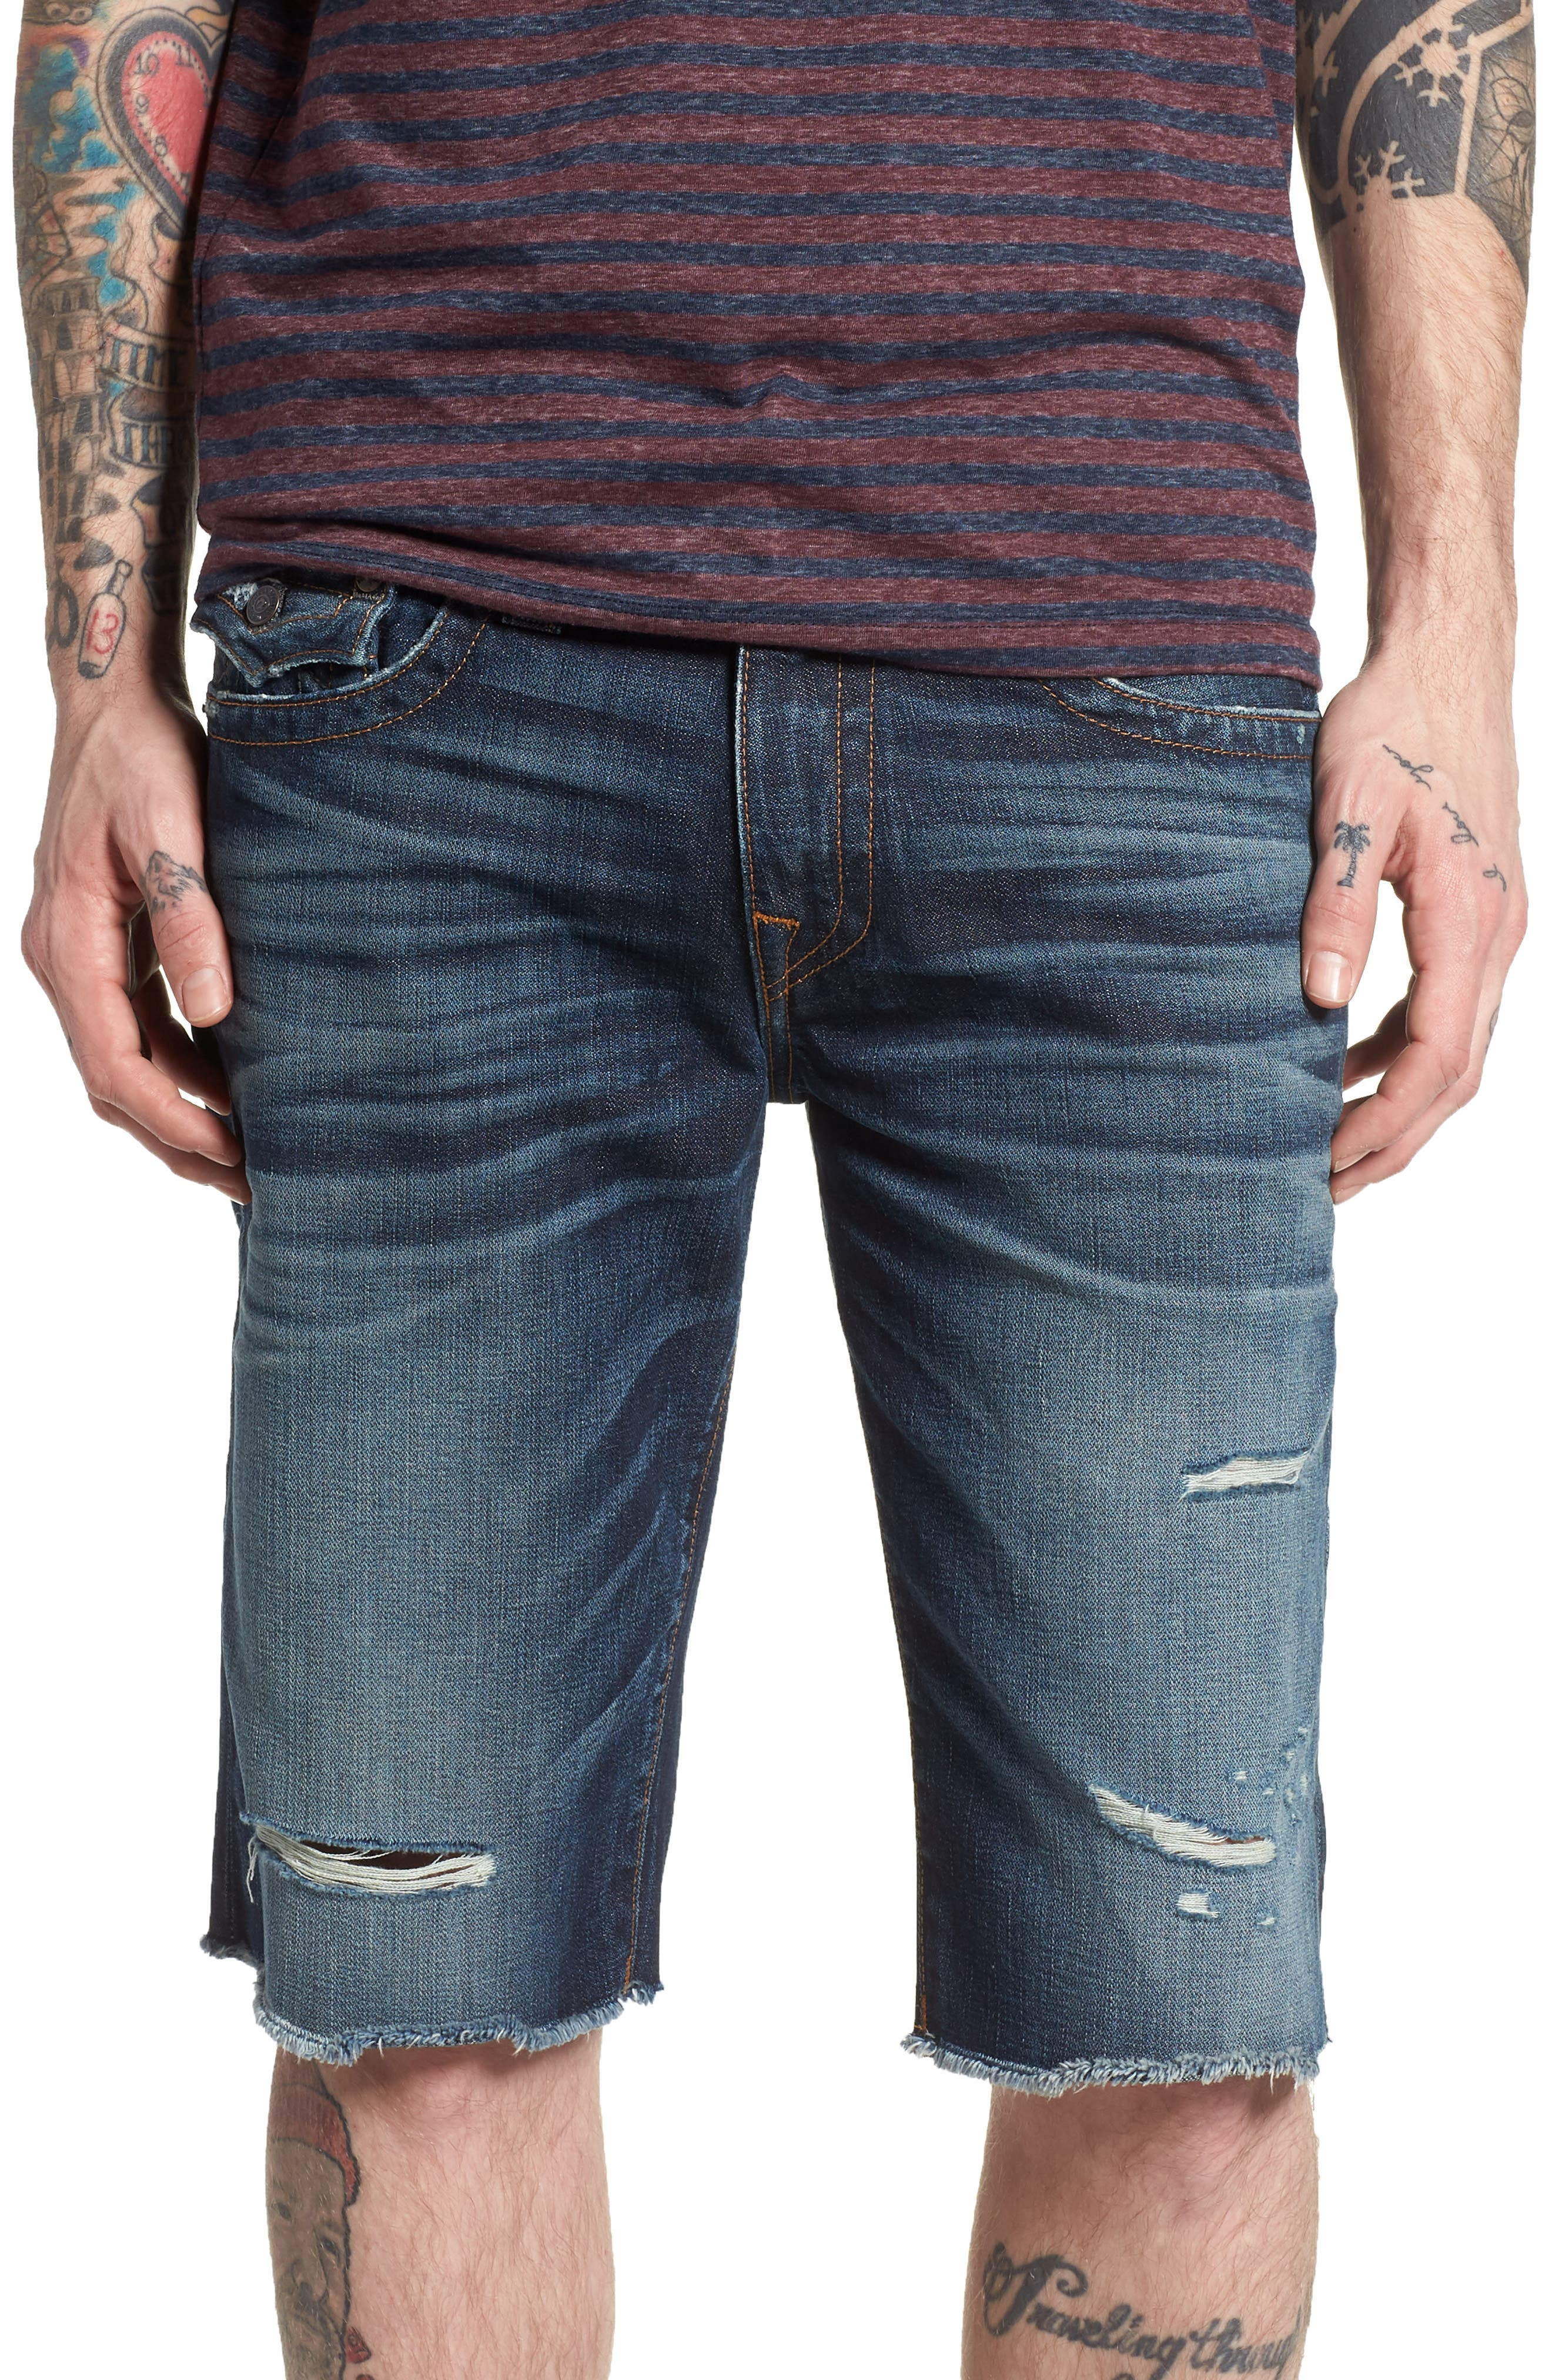 Ricky Relaxed Fit Denim Shorts,                             Main thumbnail 1, color,                             Eqrd Mignight Menace